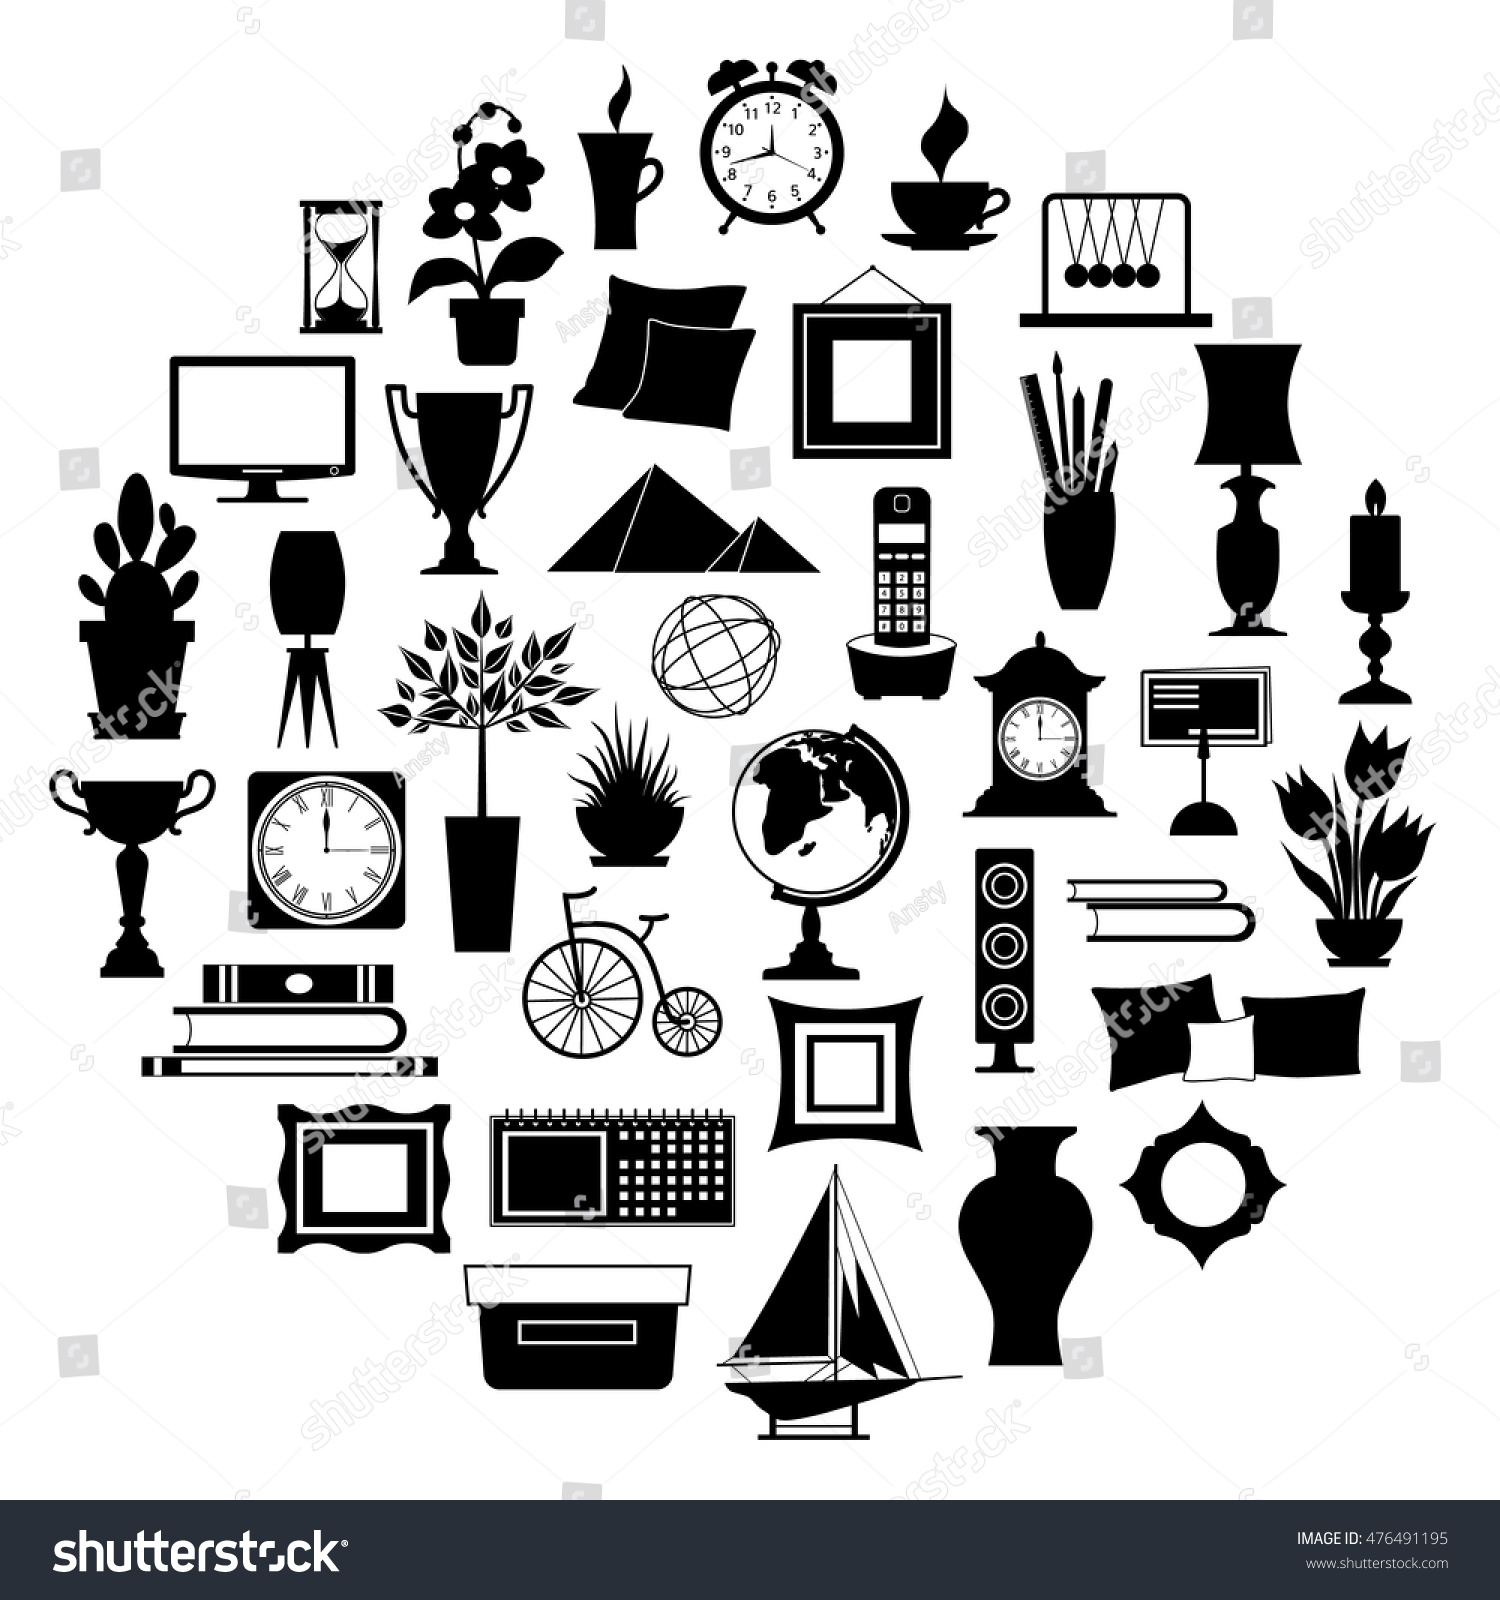 Silhouette Of Home Decor Set Of Accessories Icons And Souvenirs Isolated On White Background